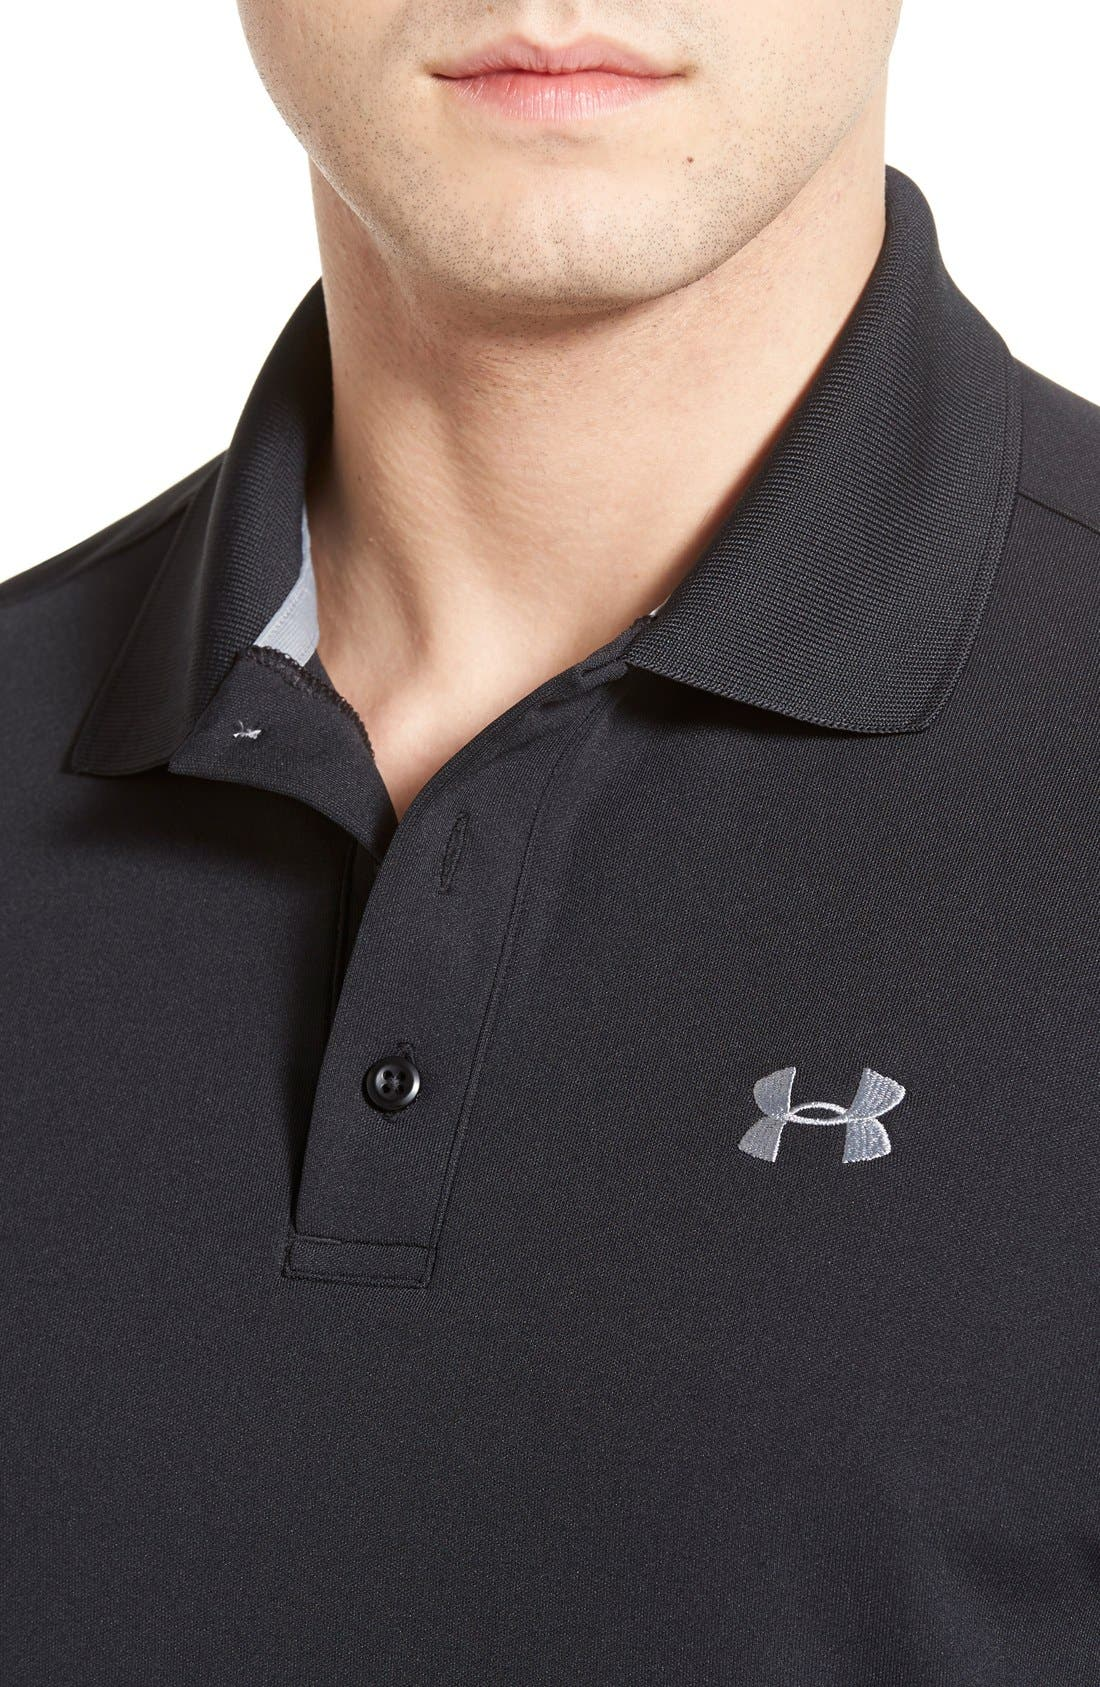 'Performance 2.0' Sweat Wicking Stretch Polo,                             Alternate thumbnail 4, color,                             Black